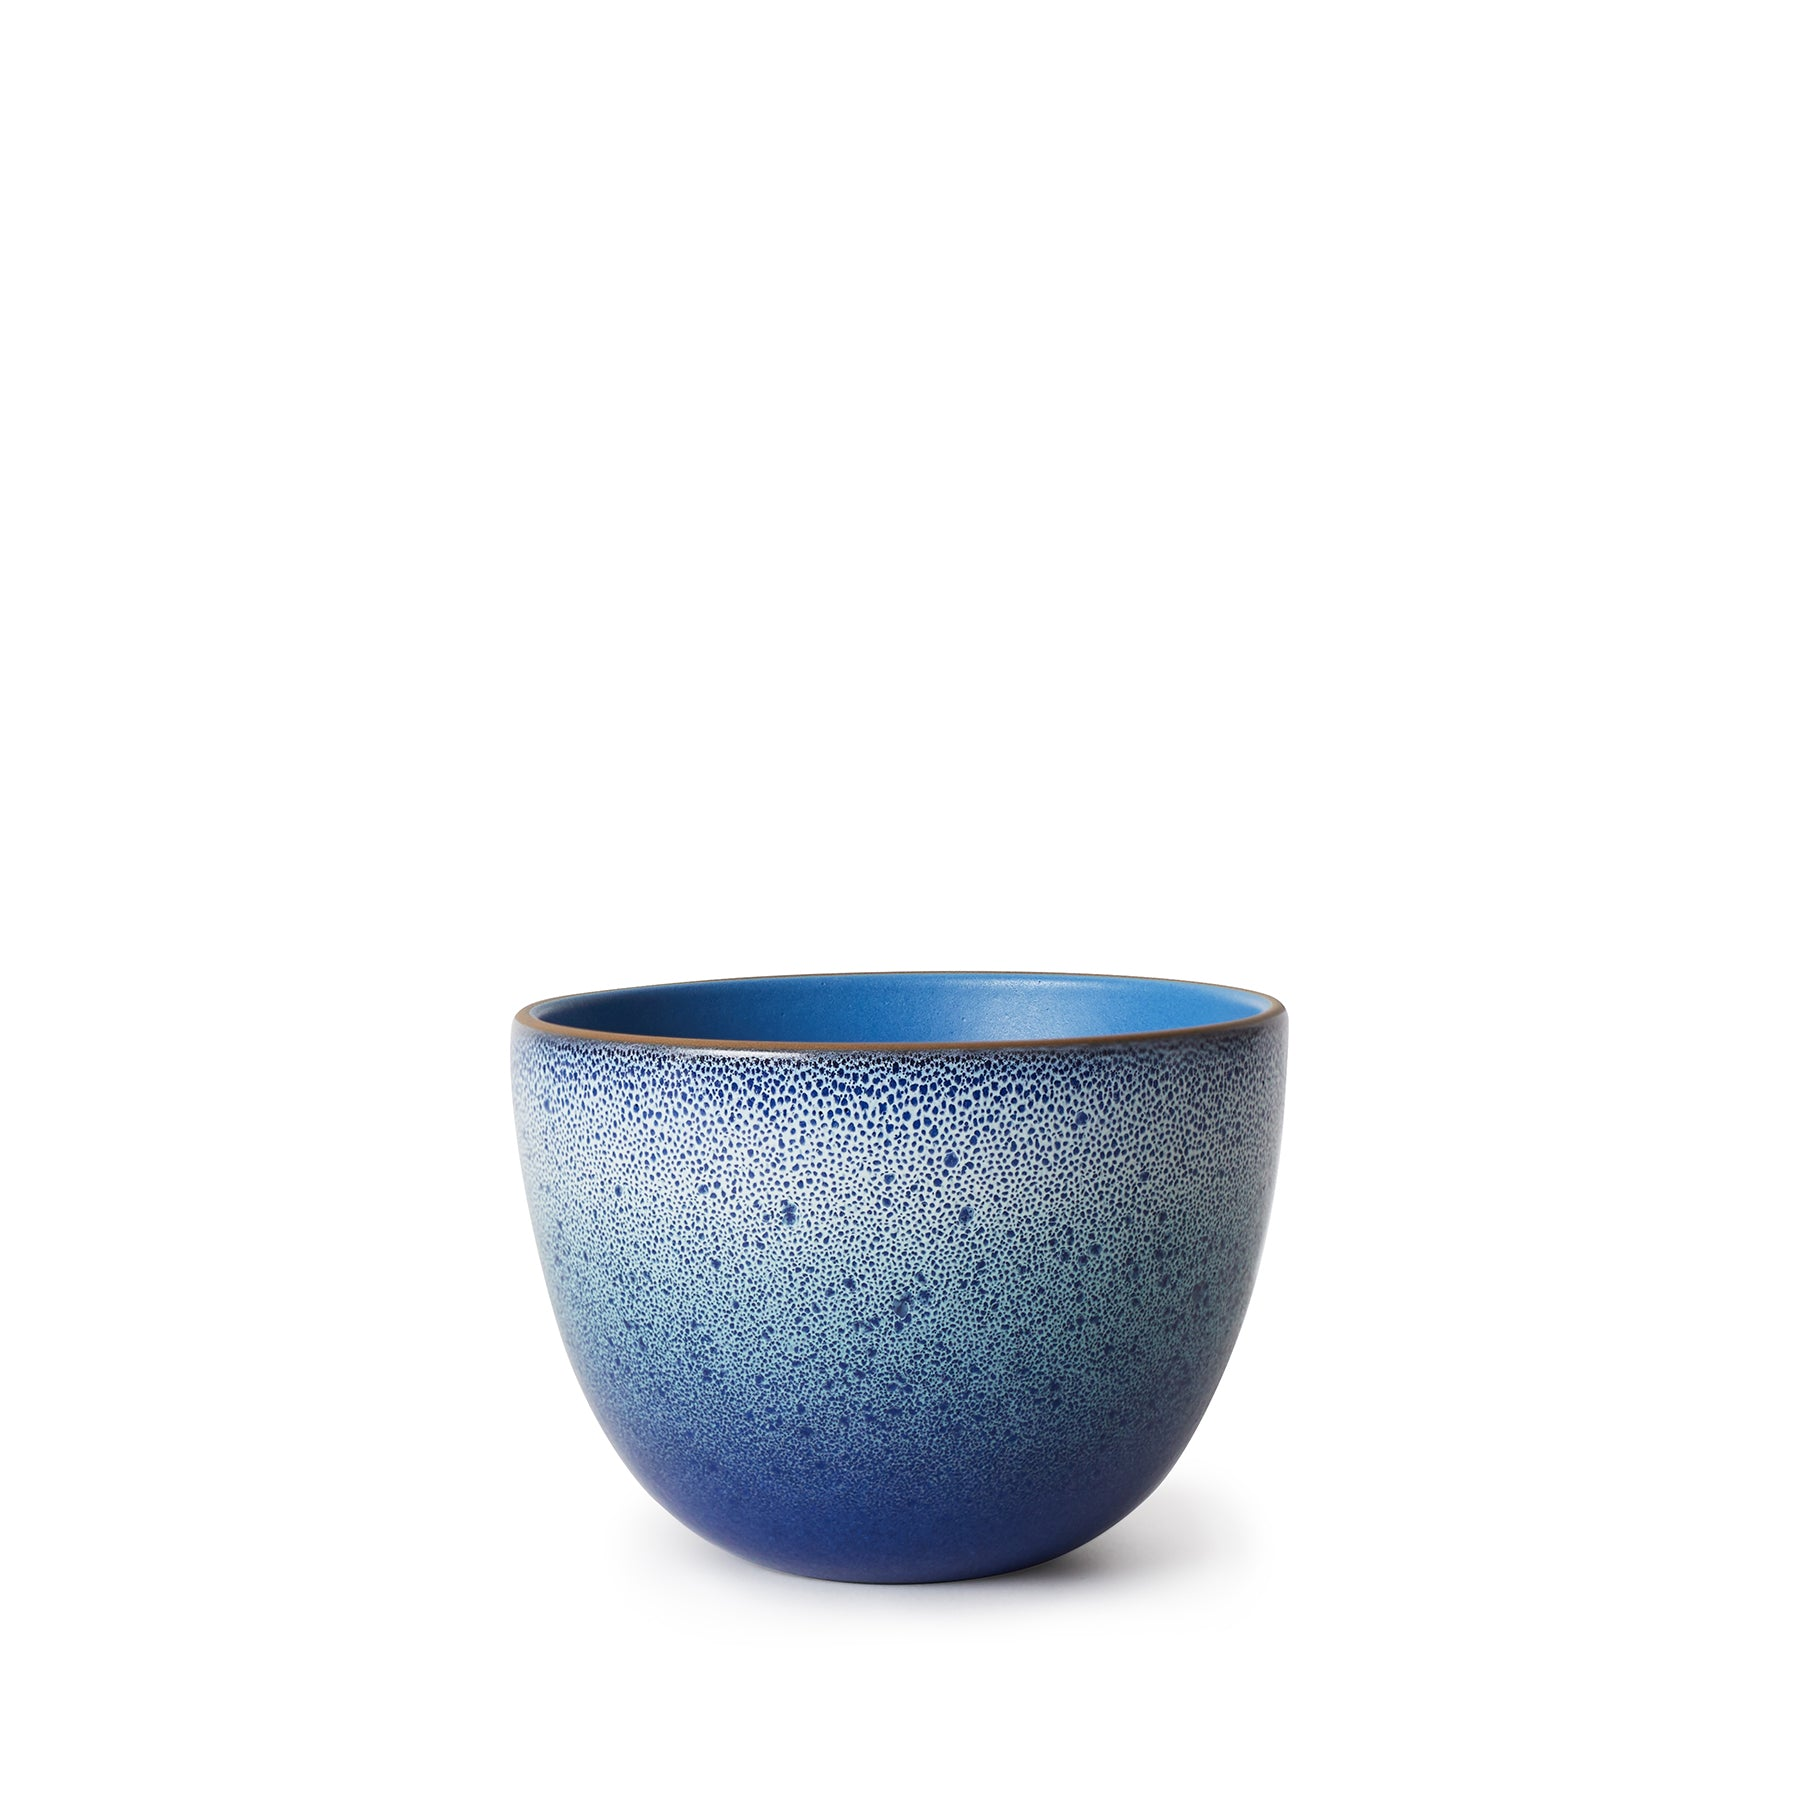 Deep Serving Bowl in Bright Blue/Moonstone Horizon Zoom Image 1